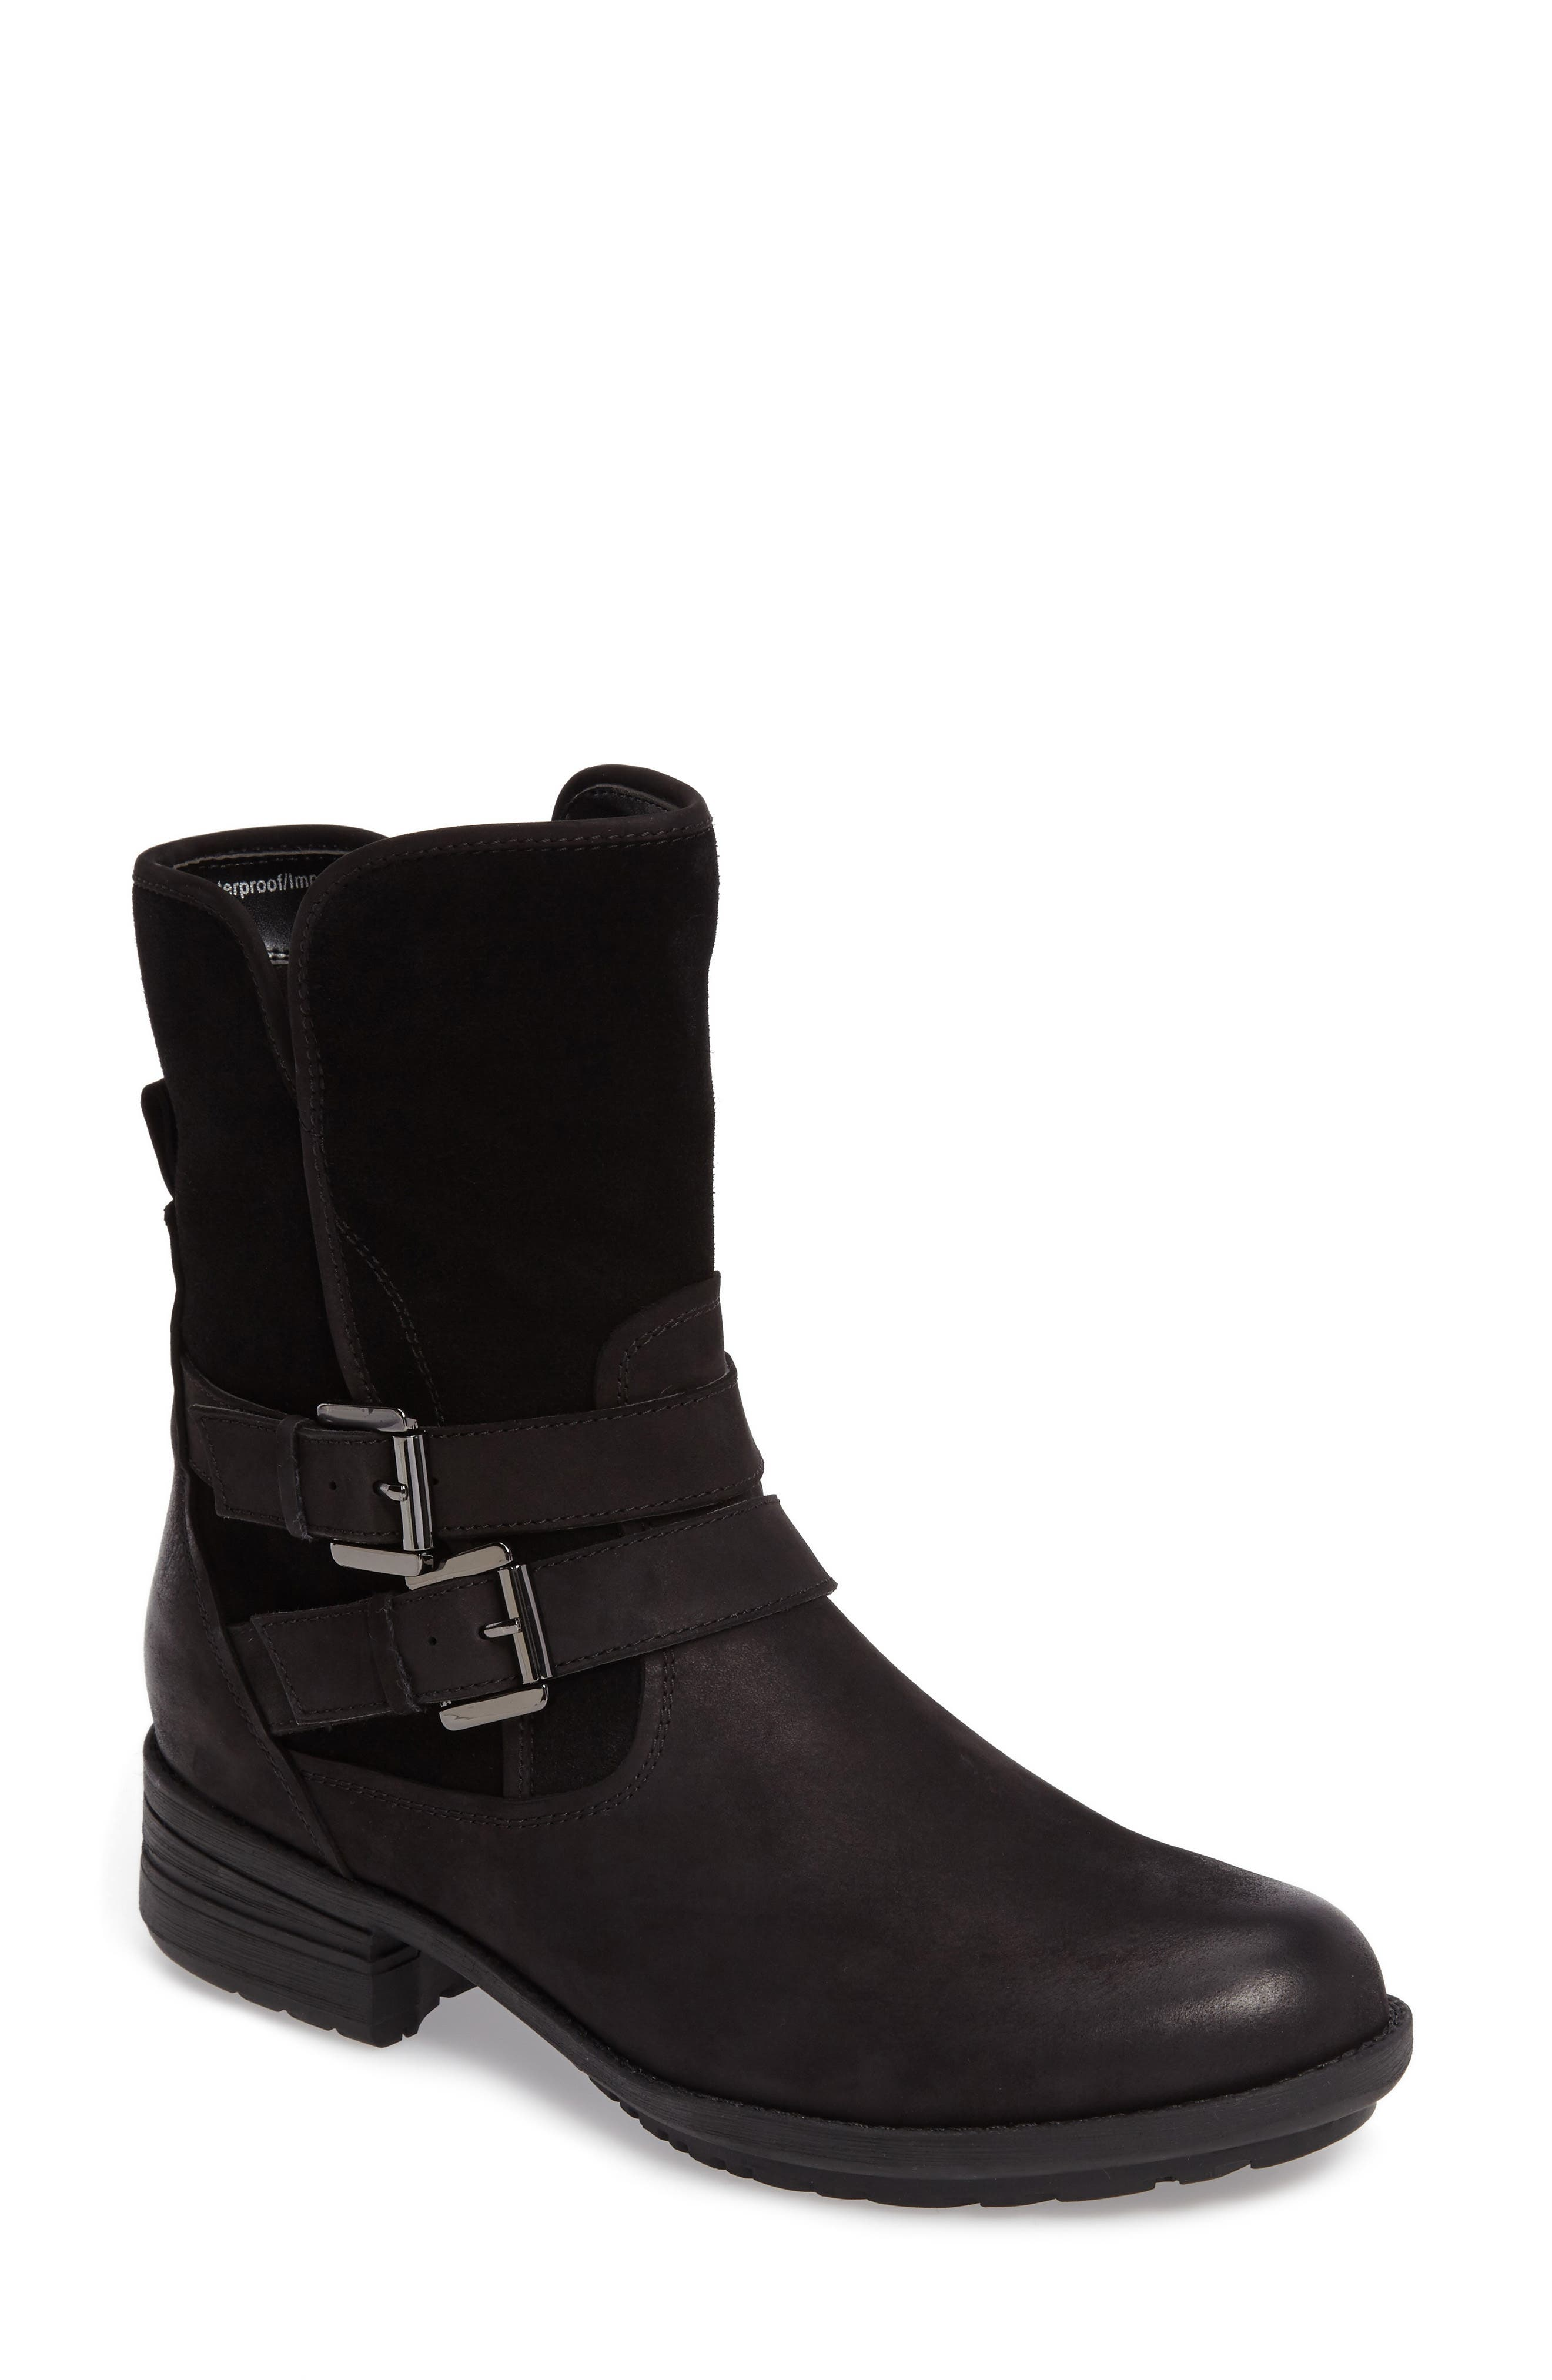 Tula Waterproof Boot,                             Main thumbnail 1, color,                             015